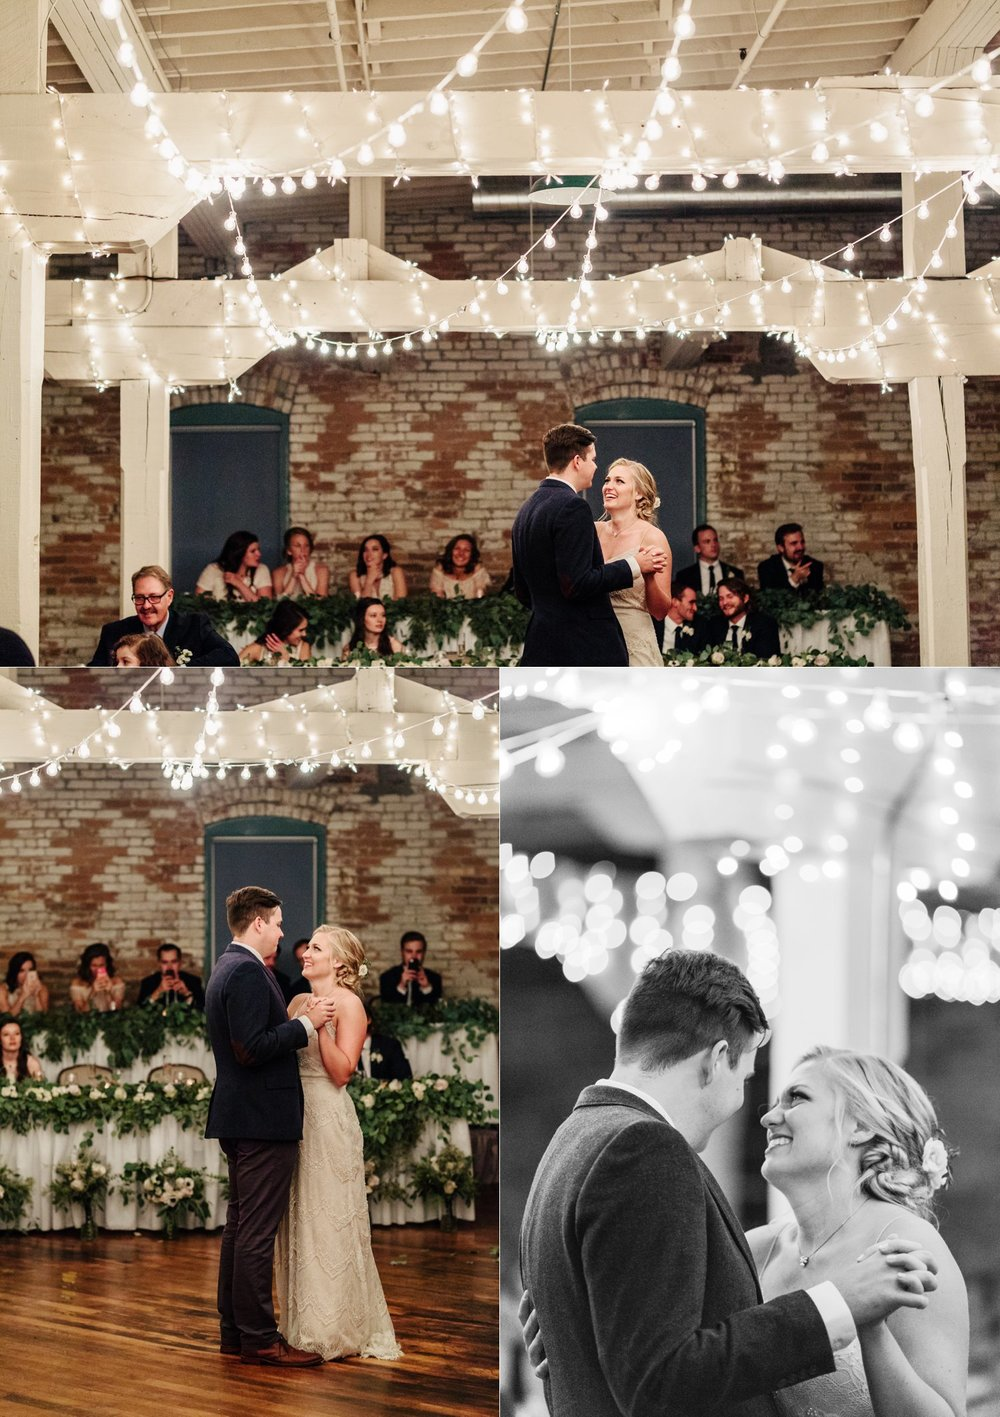 CK-Photo-Nashville-engagement-wedding-photographer-bread-chocolate-indiana